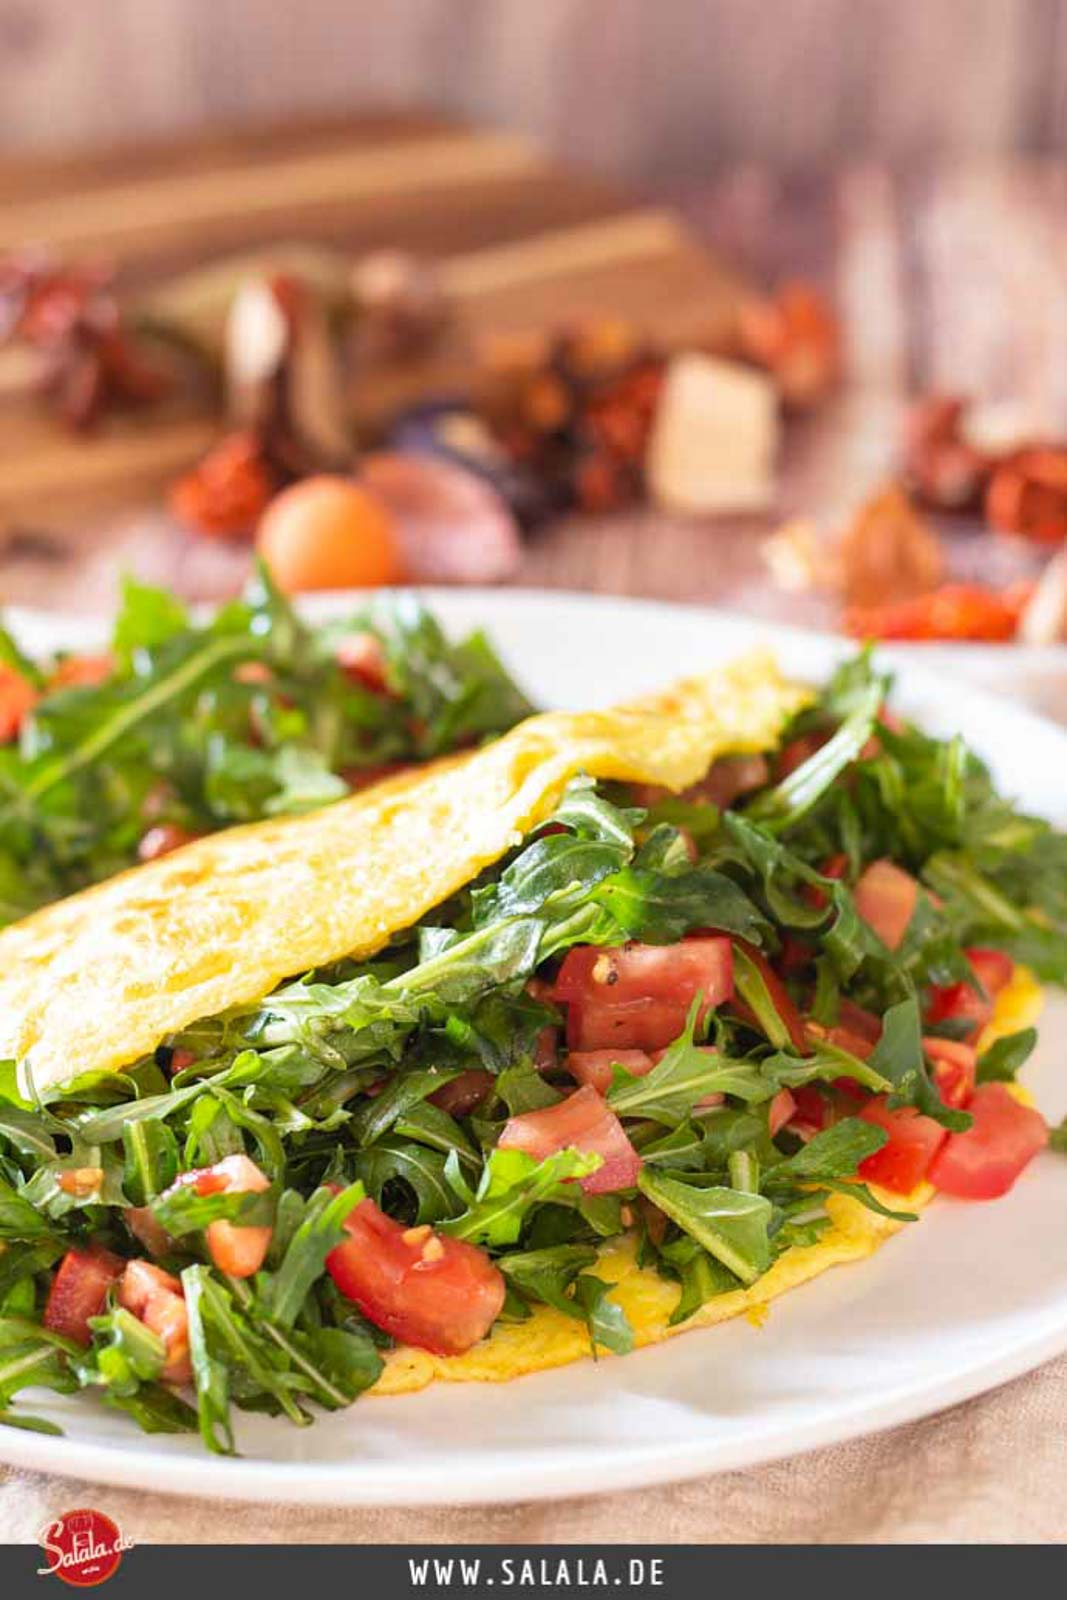 Käse-Omelette mit Rucola und Tomate - by salala.de - Rezept ohne Mehl Low Carb #omelette #lowcarb #lowcarbrezepte #rezepte #rezeptemitei #frühstück #lowcarbfrühstück